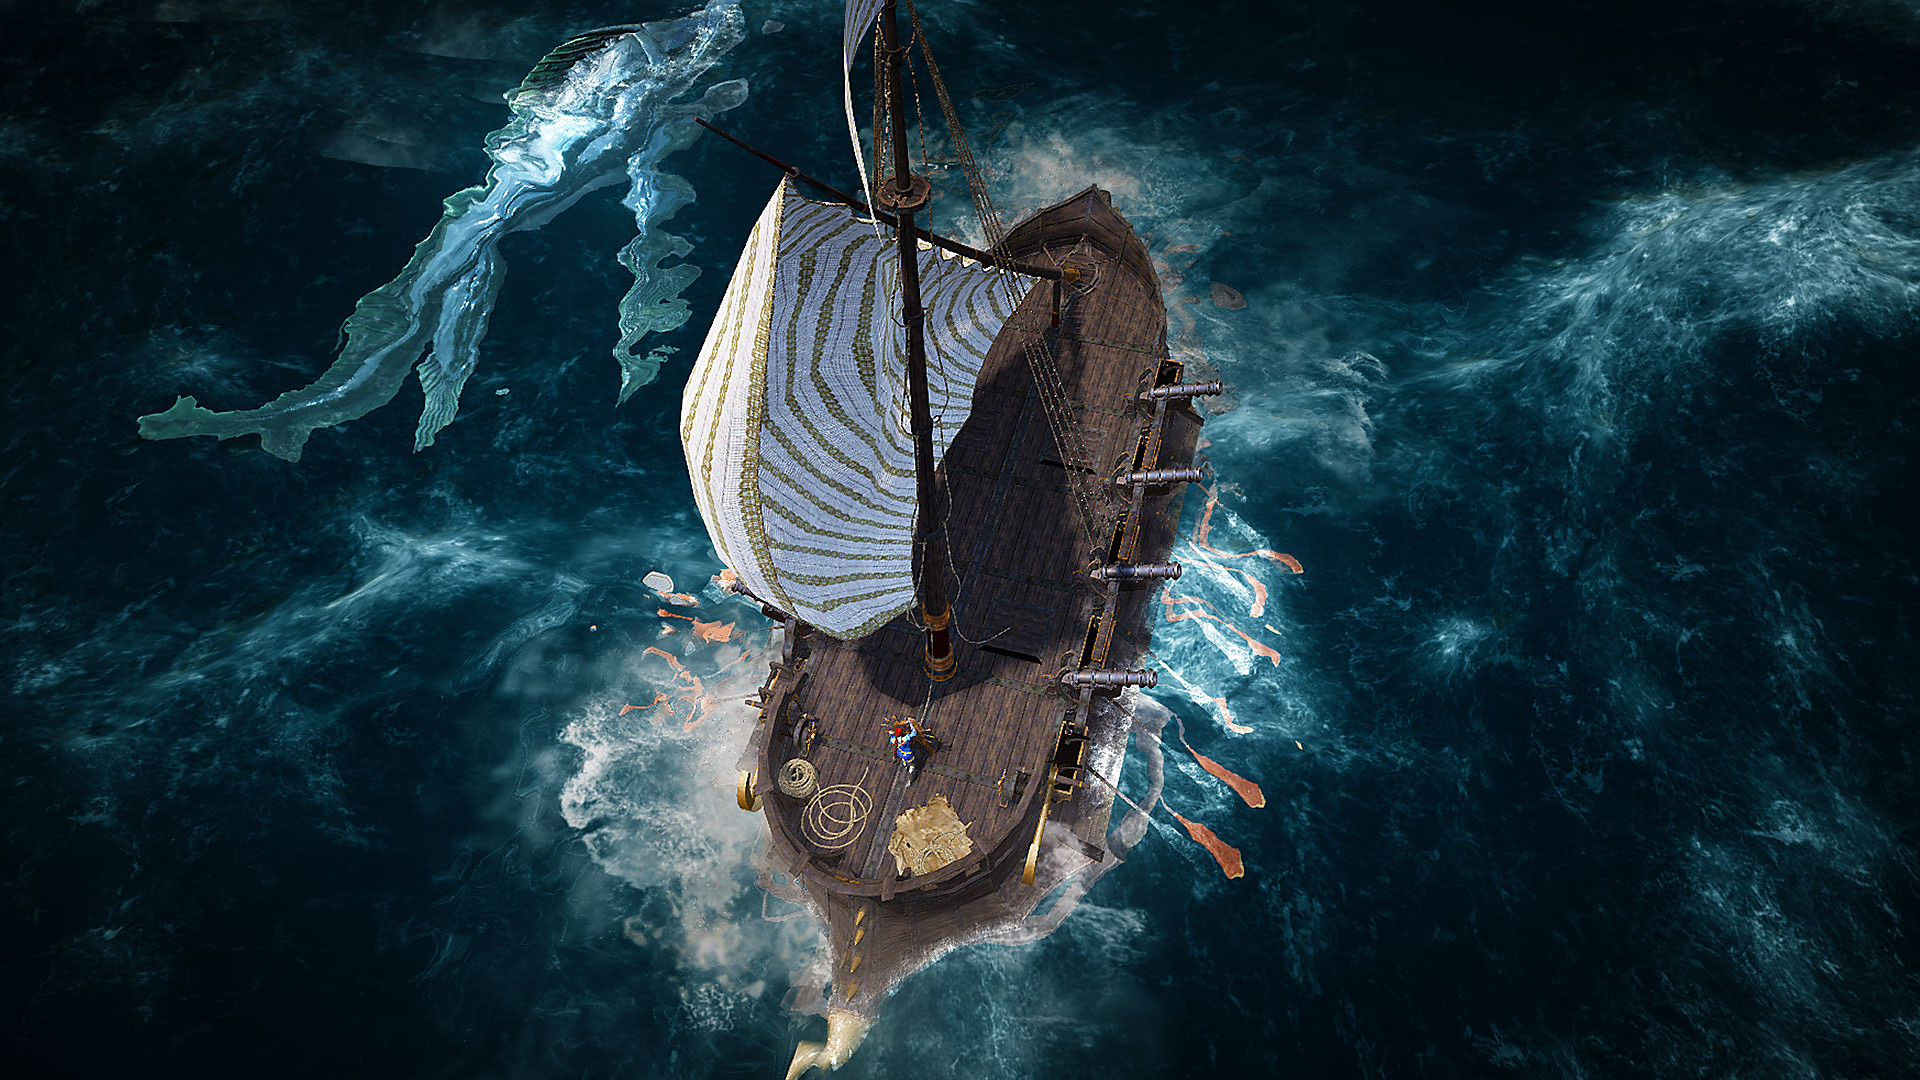 Black Desert screenshot - Boat in the water